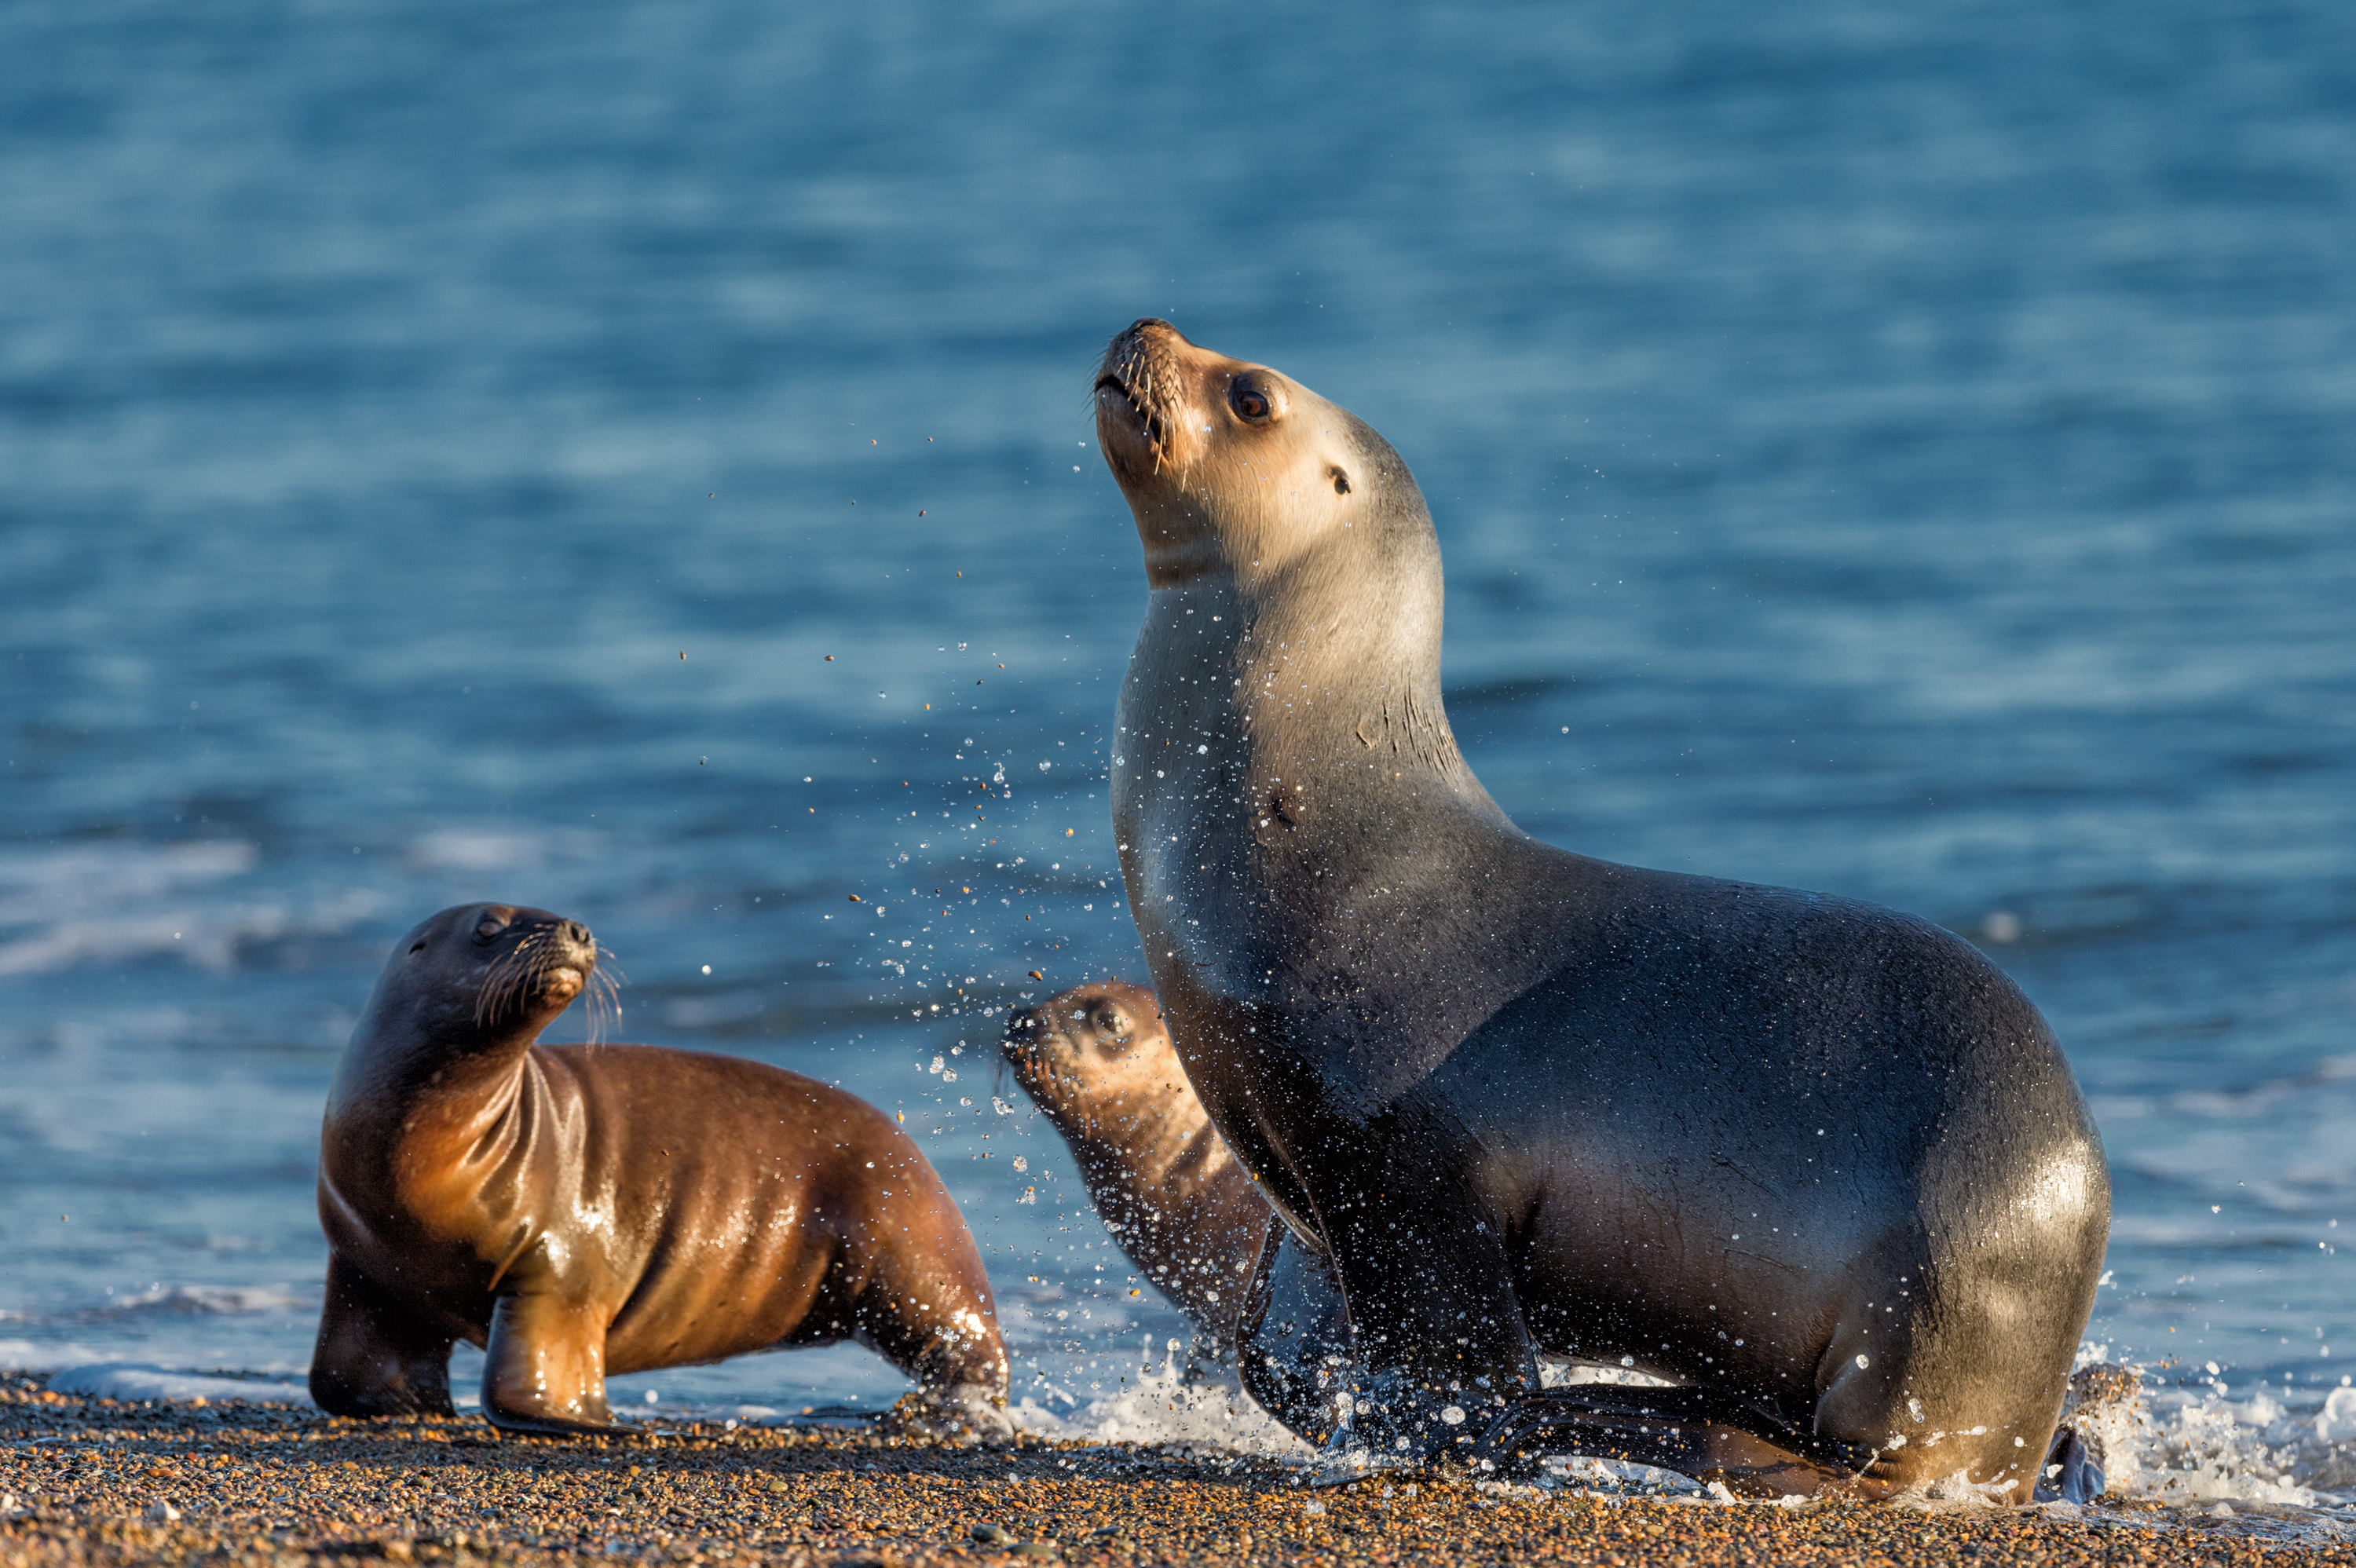 patagonia sea lion on the beach by the water